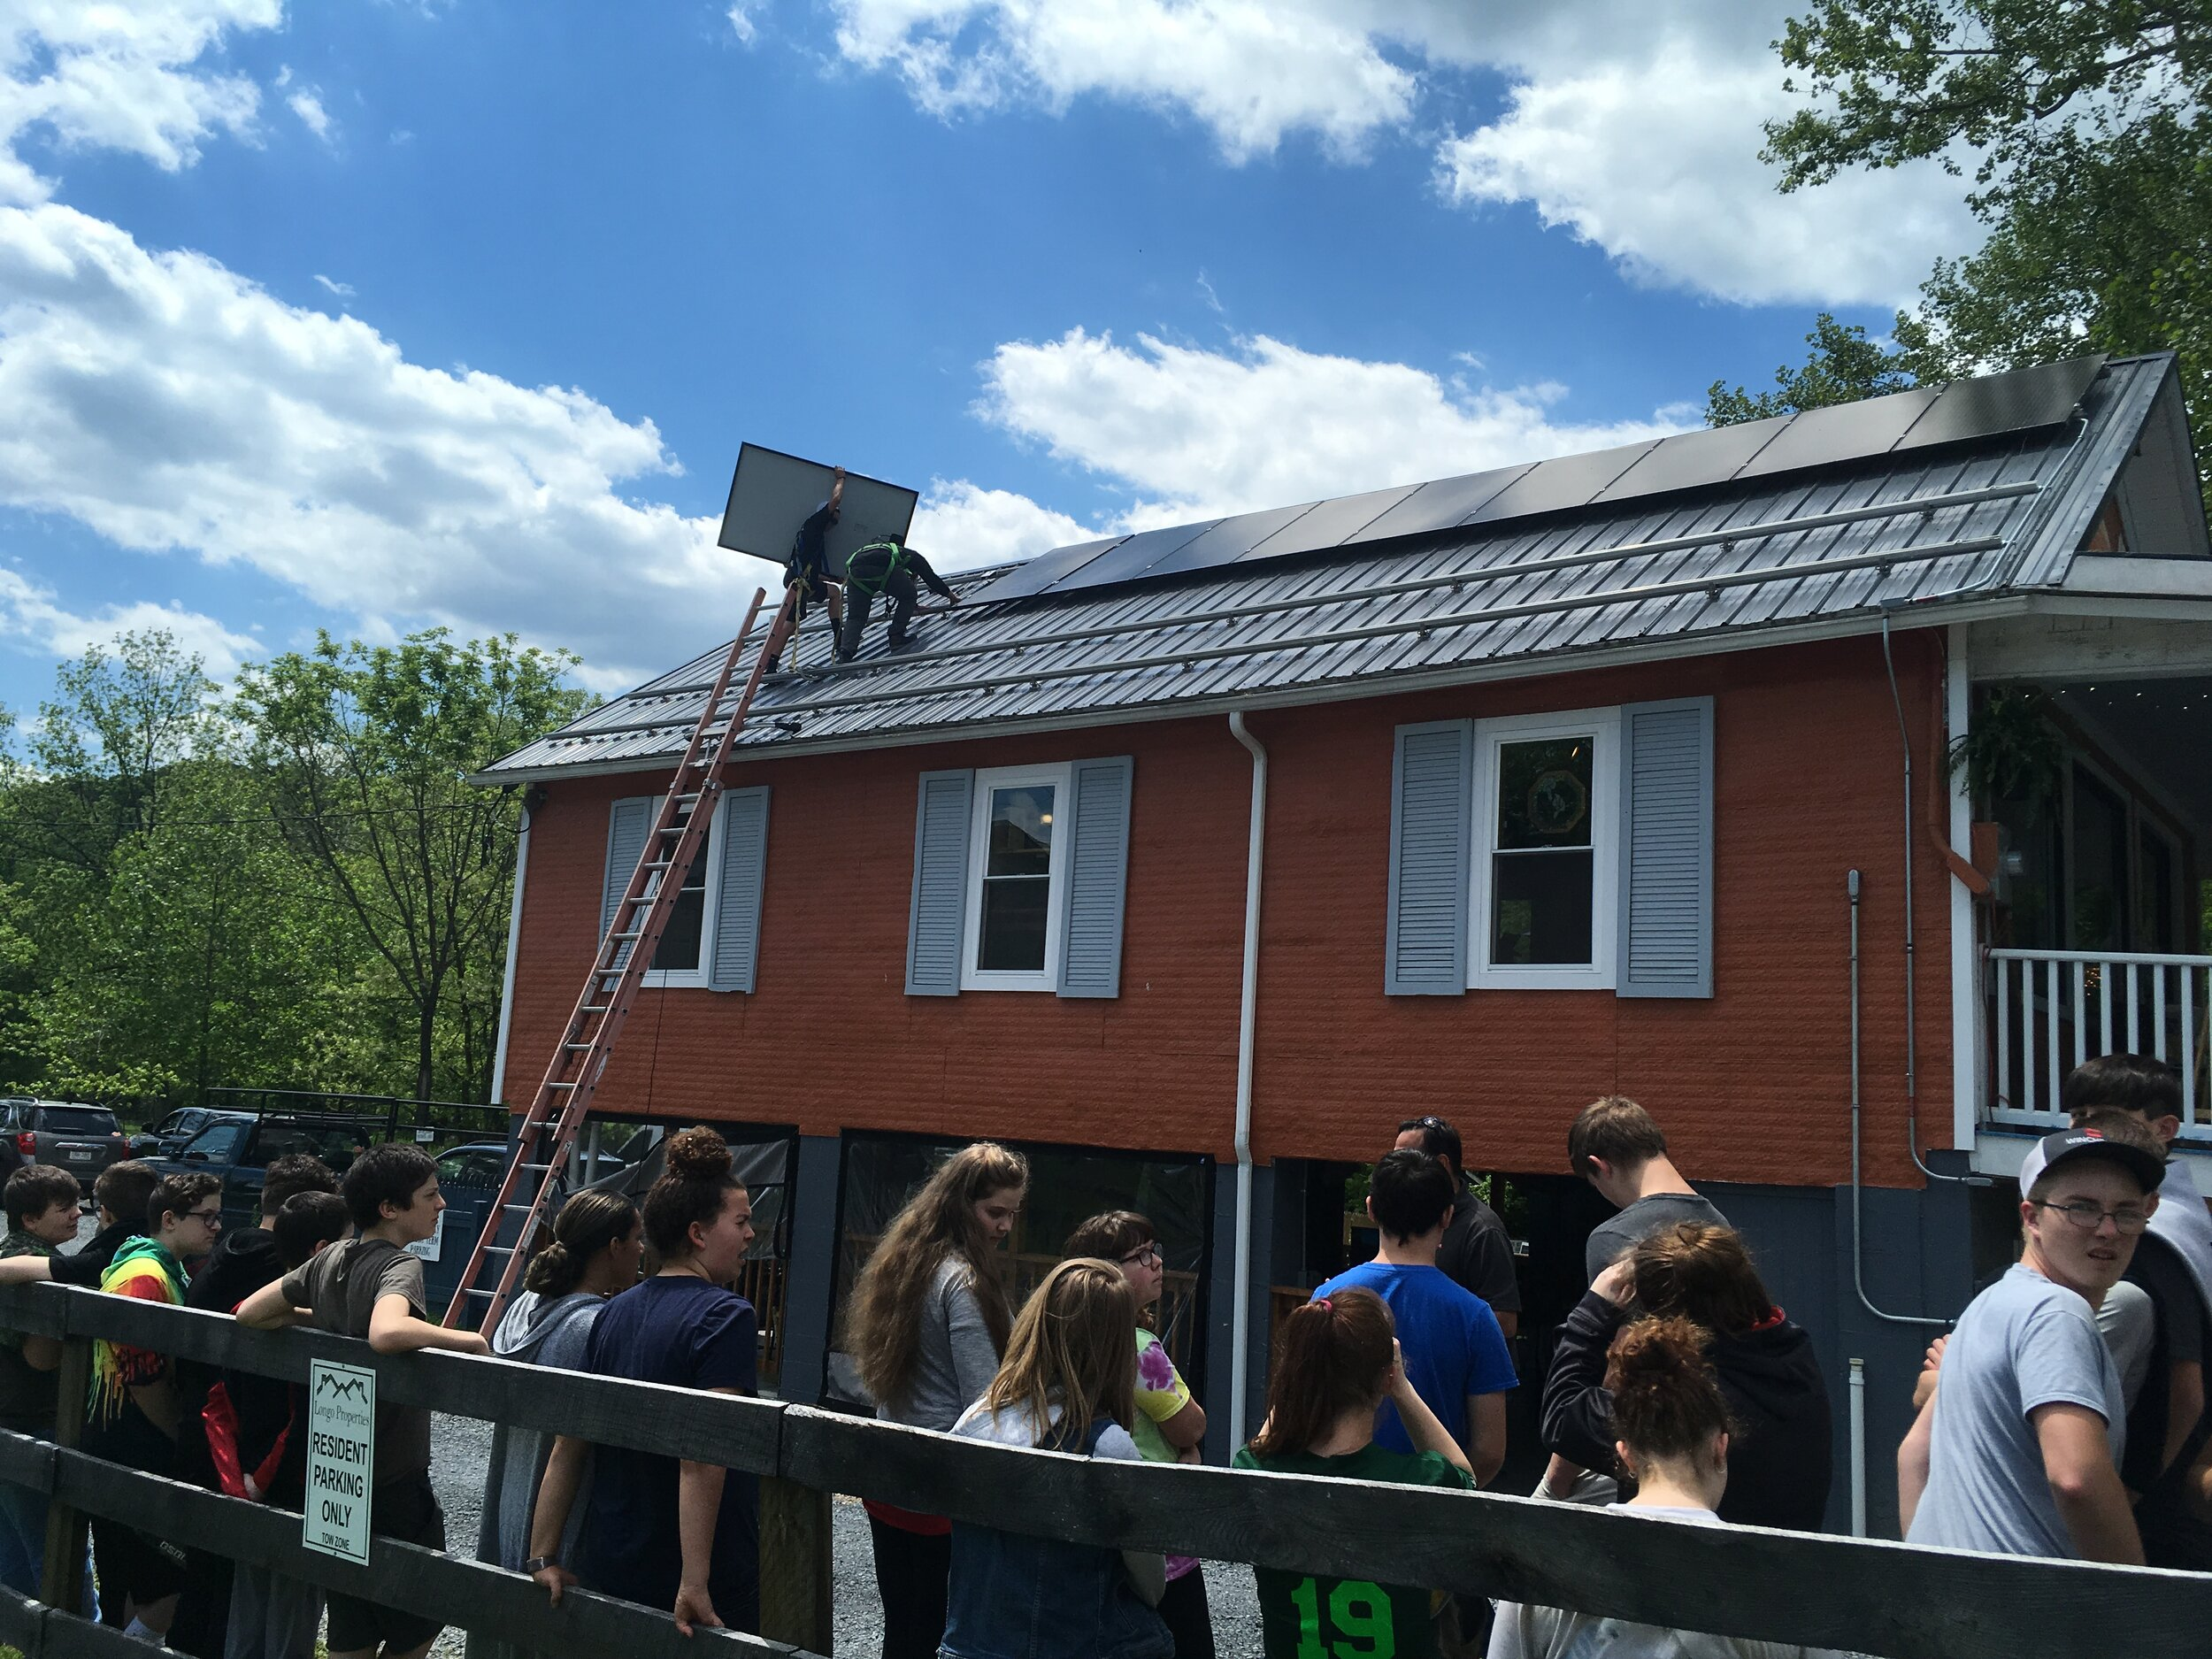 Students from Capon Bridge Middles School visited The River House to see the installation of two donated panels and to learn about careers in West Virginia's solar industry